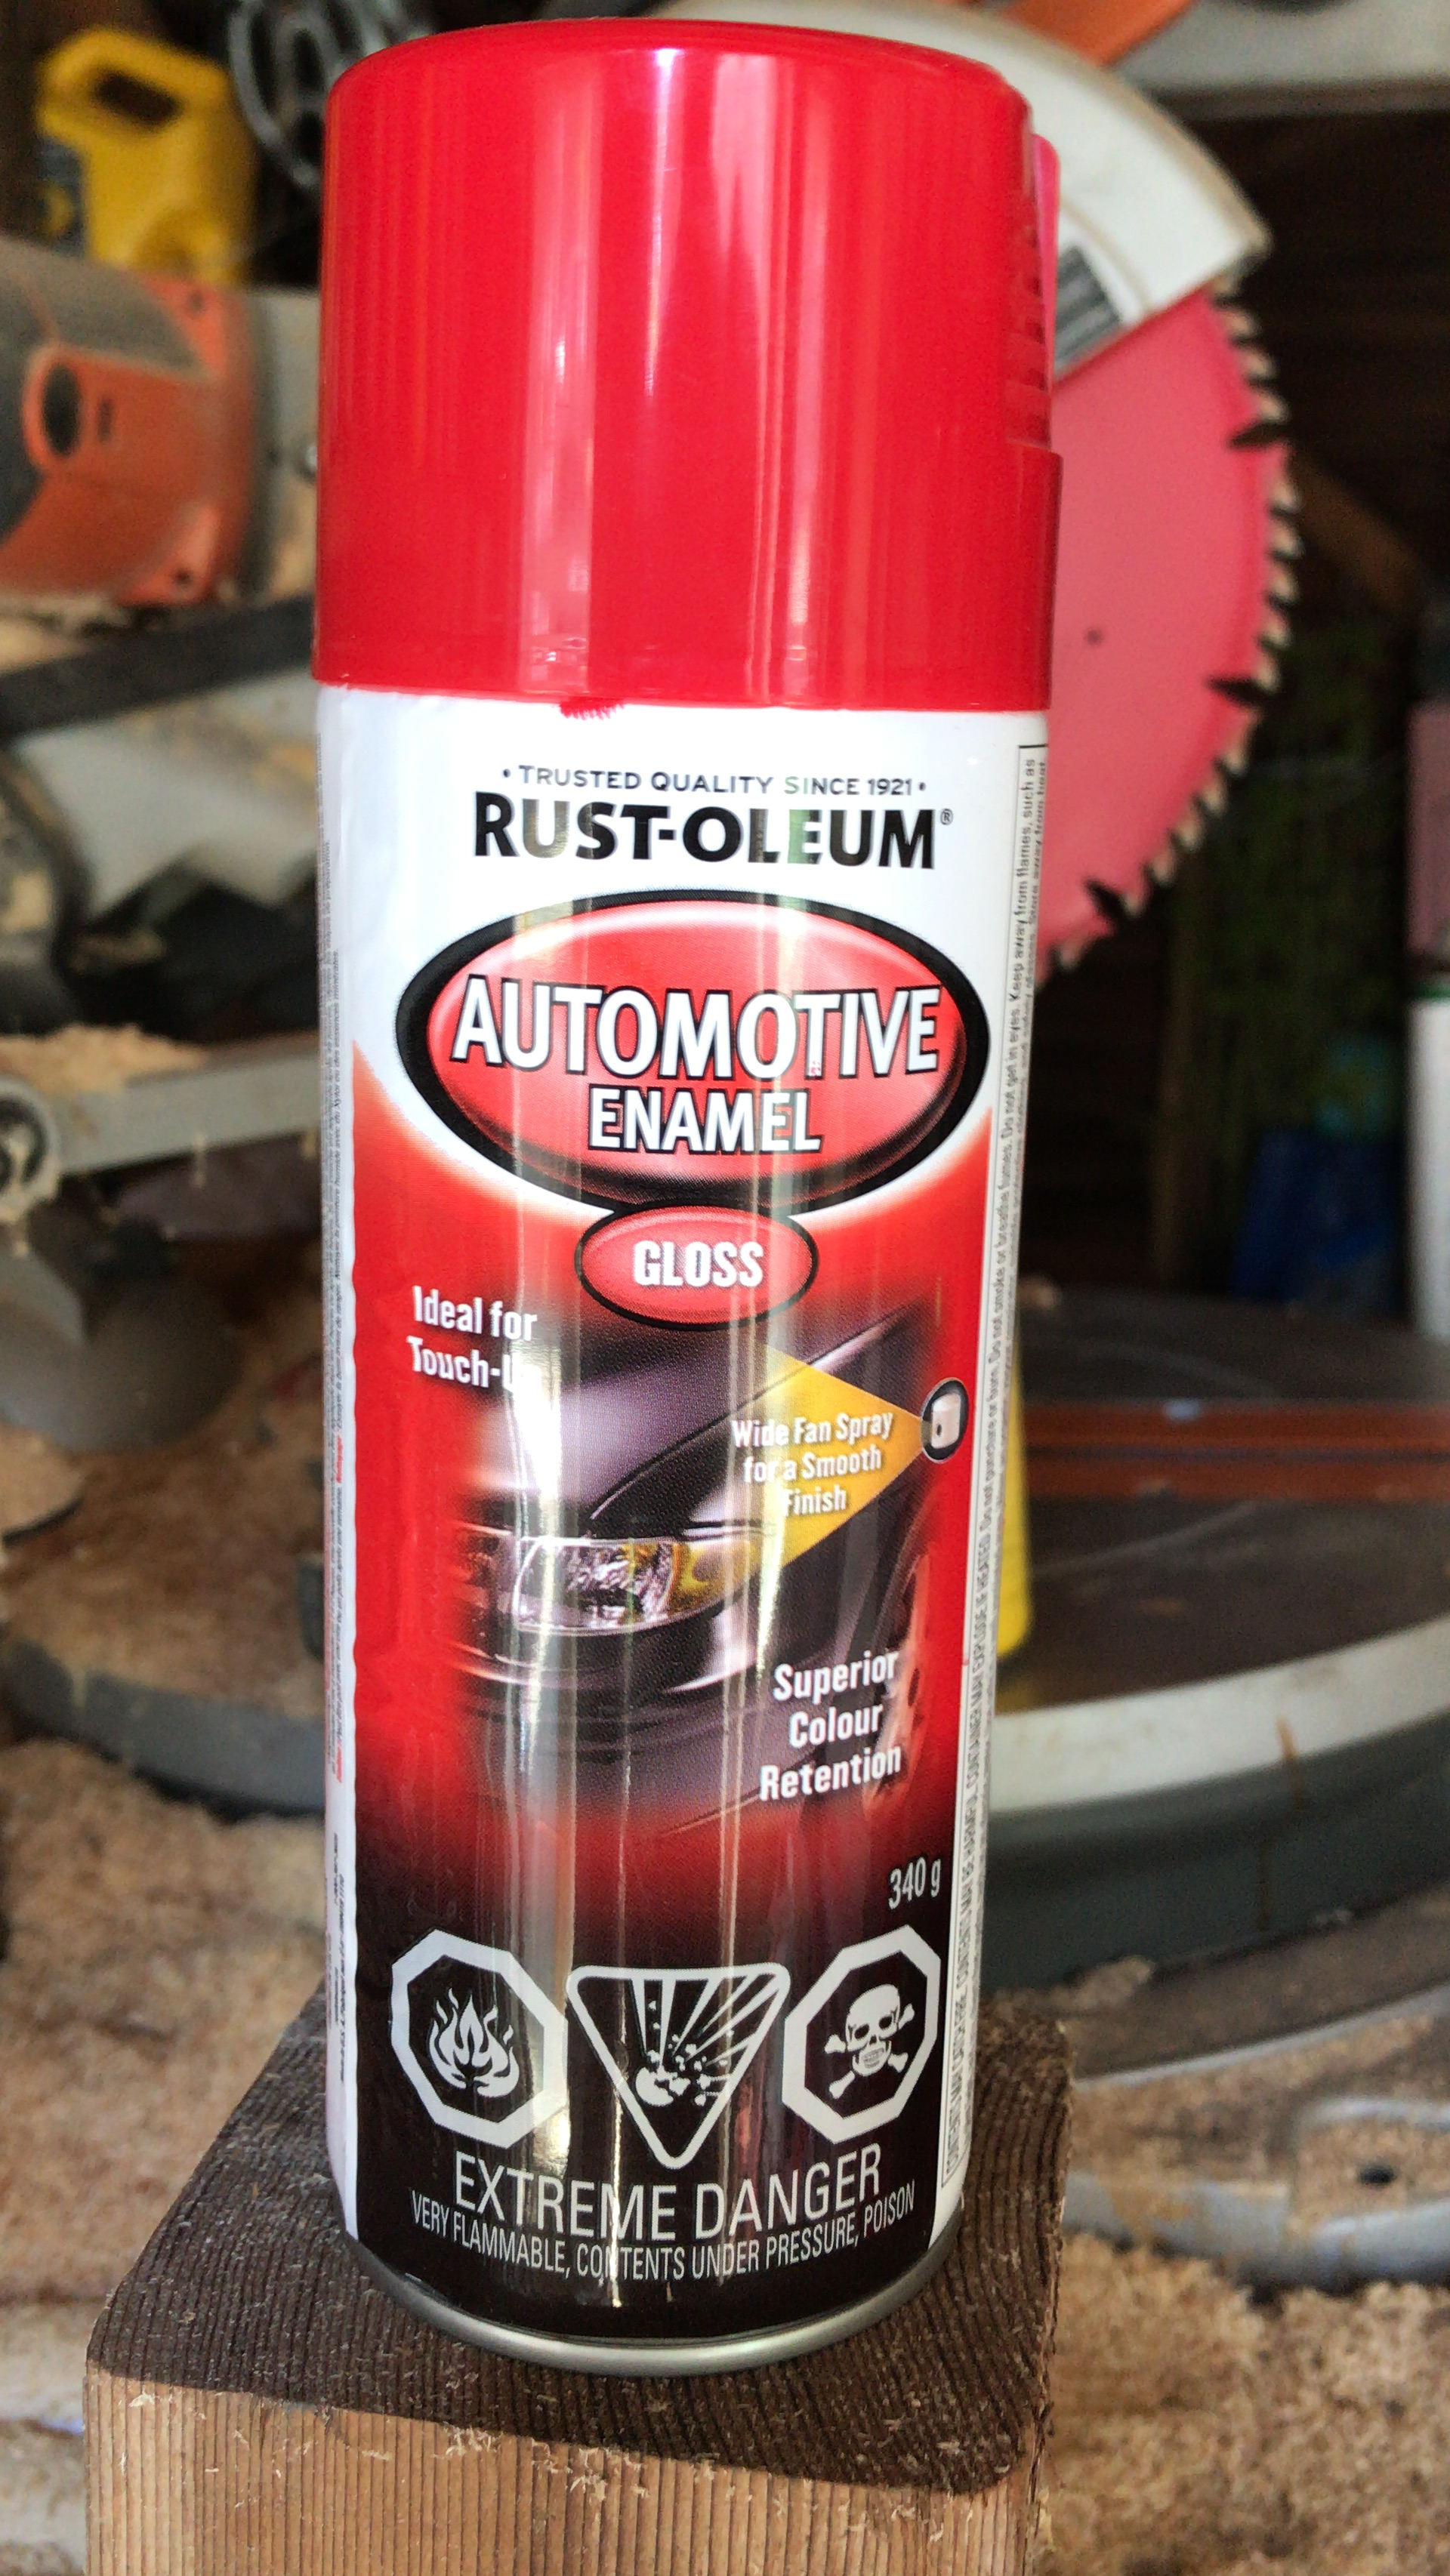 Rust-oleum red gloss automotive enamel spray paint at Lowes.ca